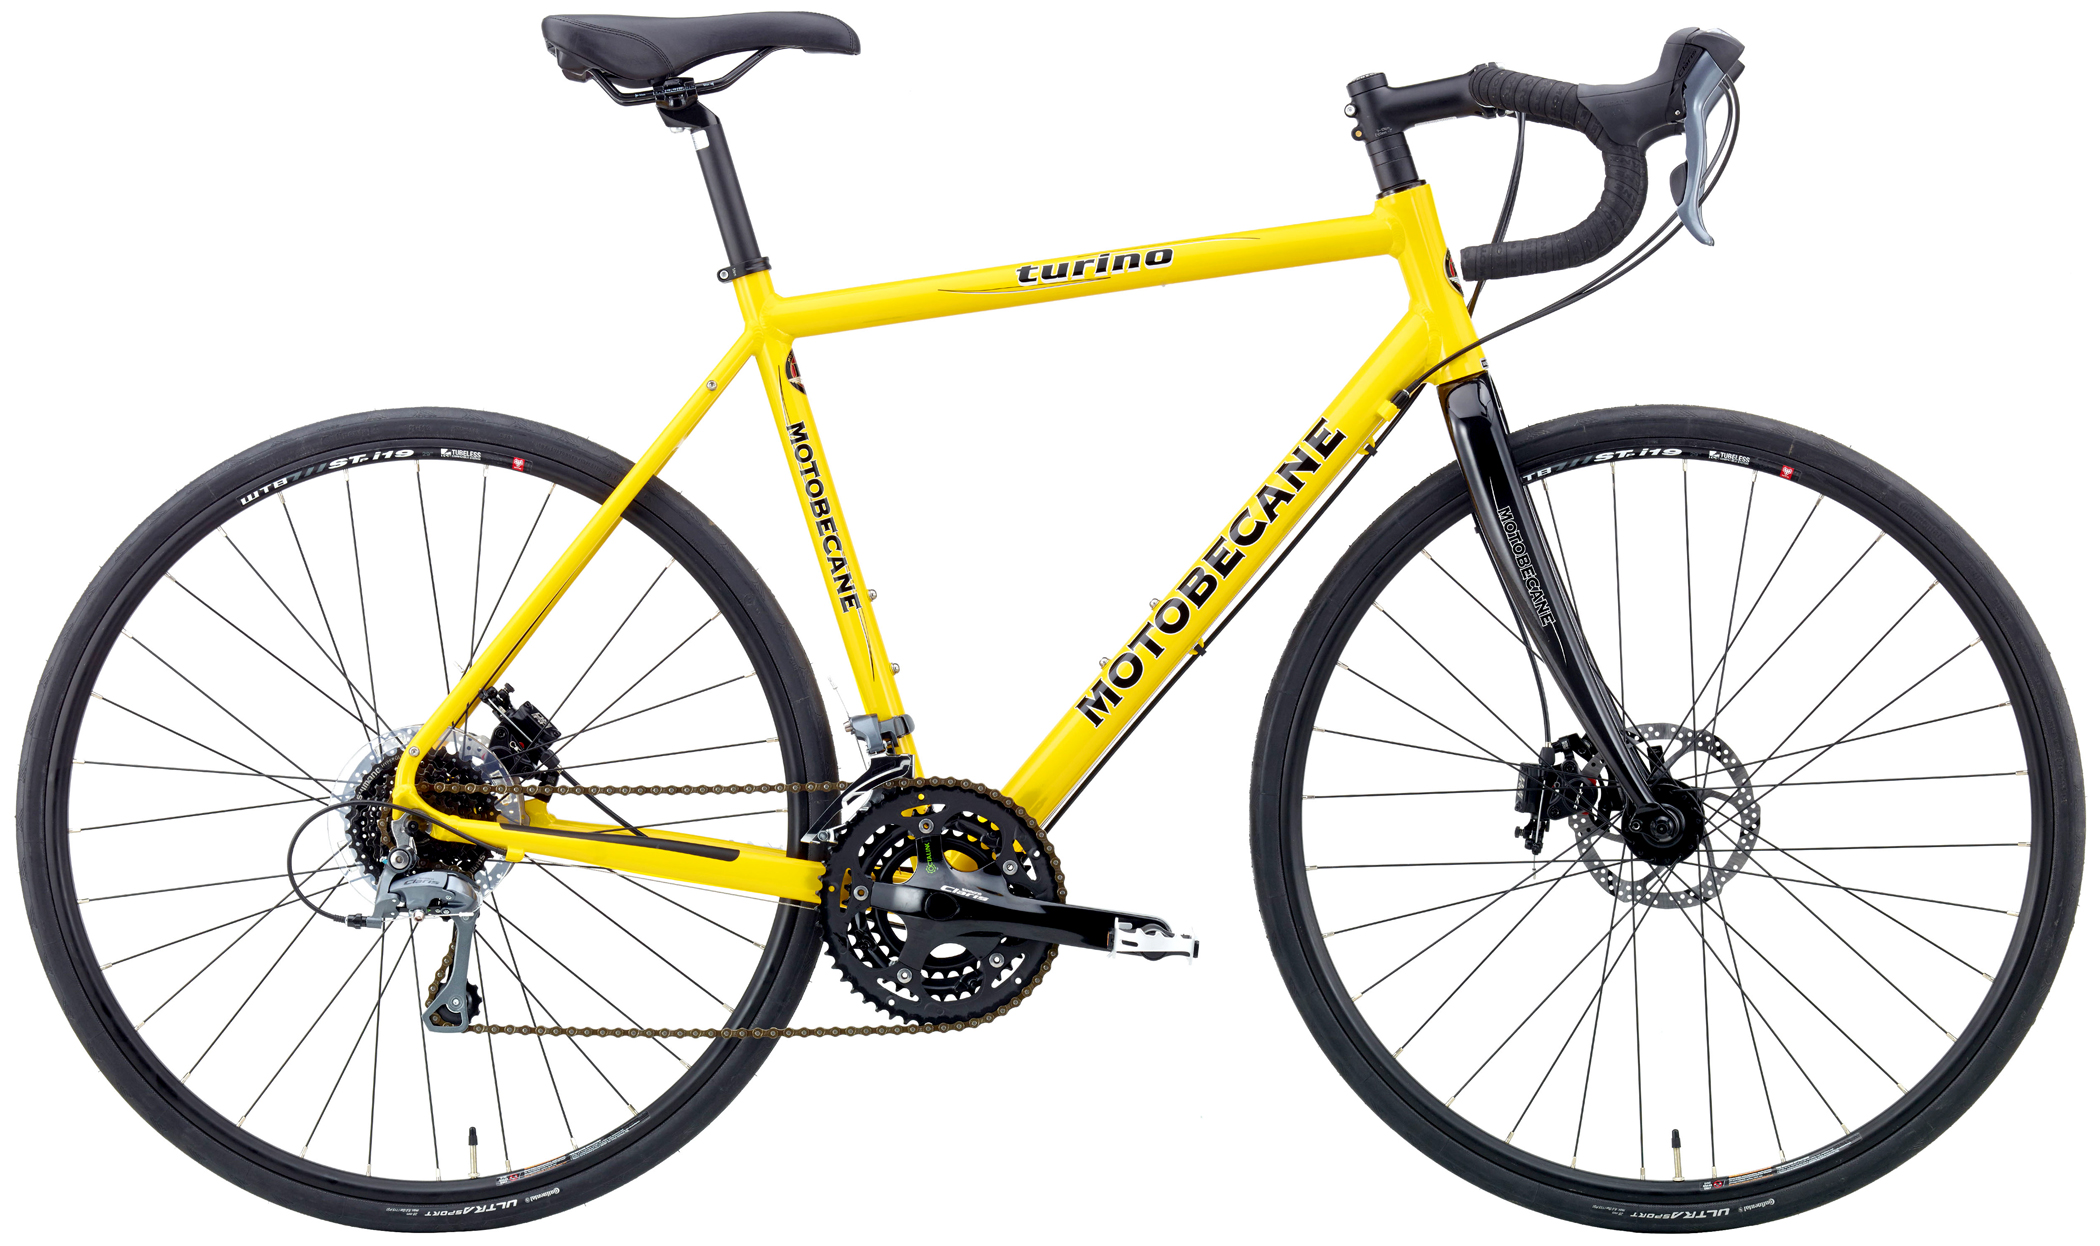 TURINO EXPERT DISC - ALUMINUM w/ HYDRAULIC DISC BRAKES, CARBON FORK